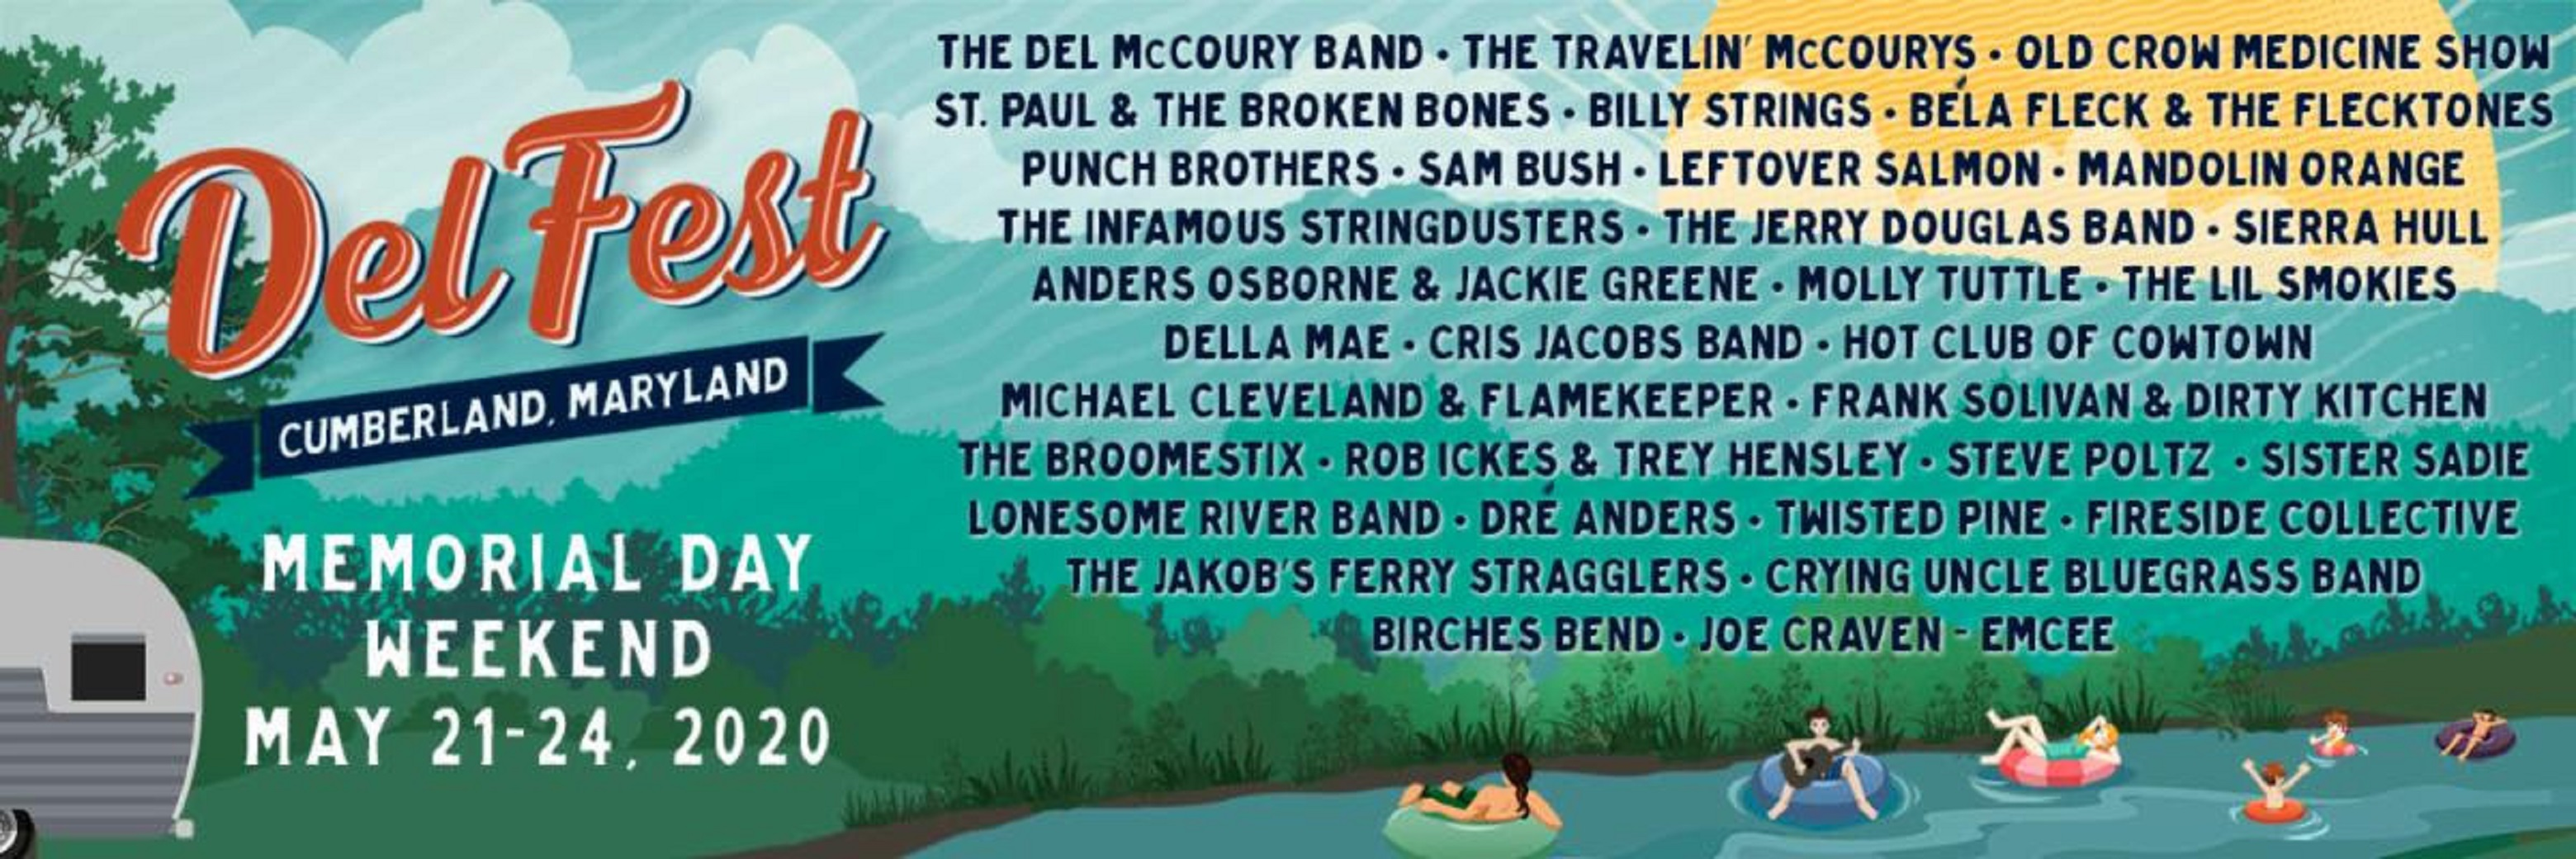 DelFest Announces Leftover Salmon, The Jerry Douglas Band, Anders Osborne & Jackie Greene, Molly Tuttle, and more